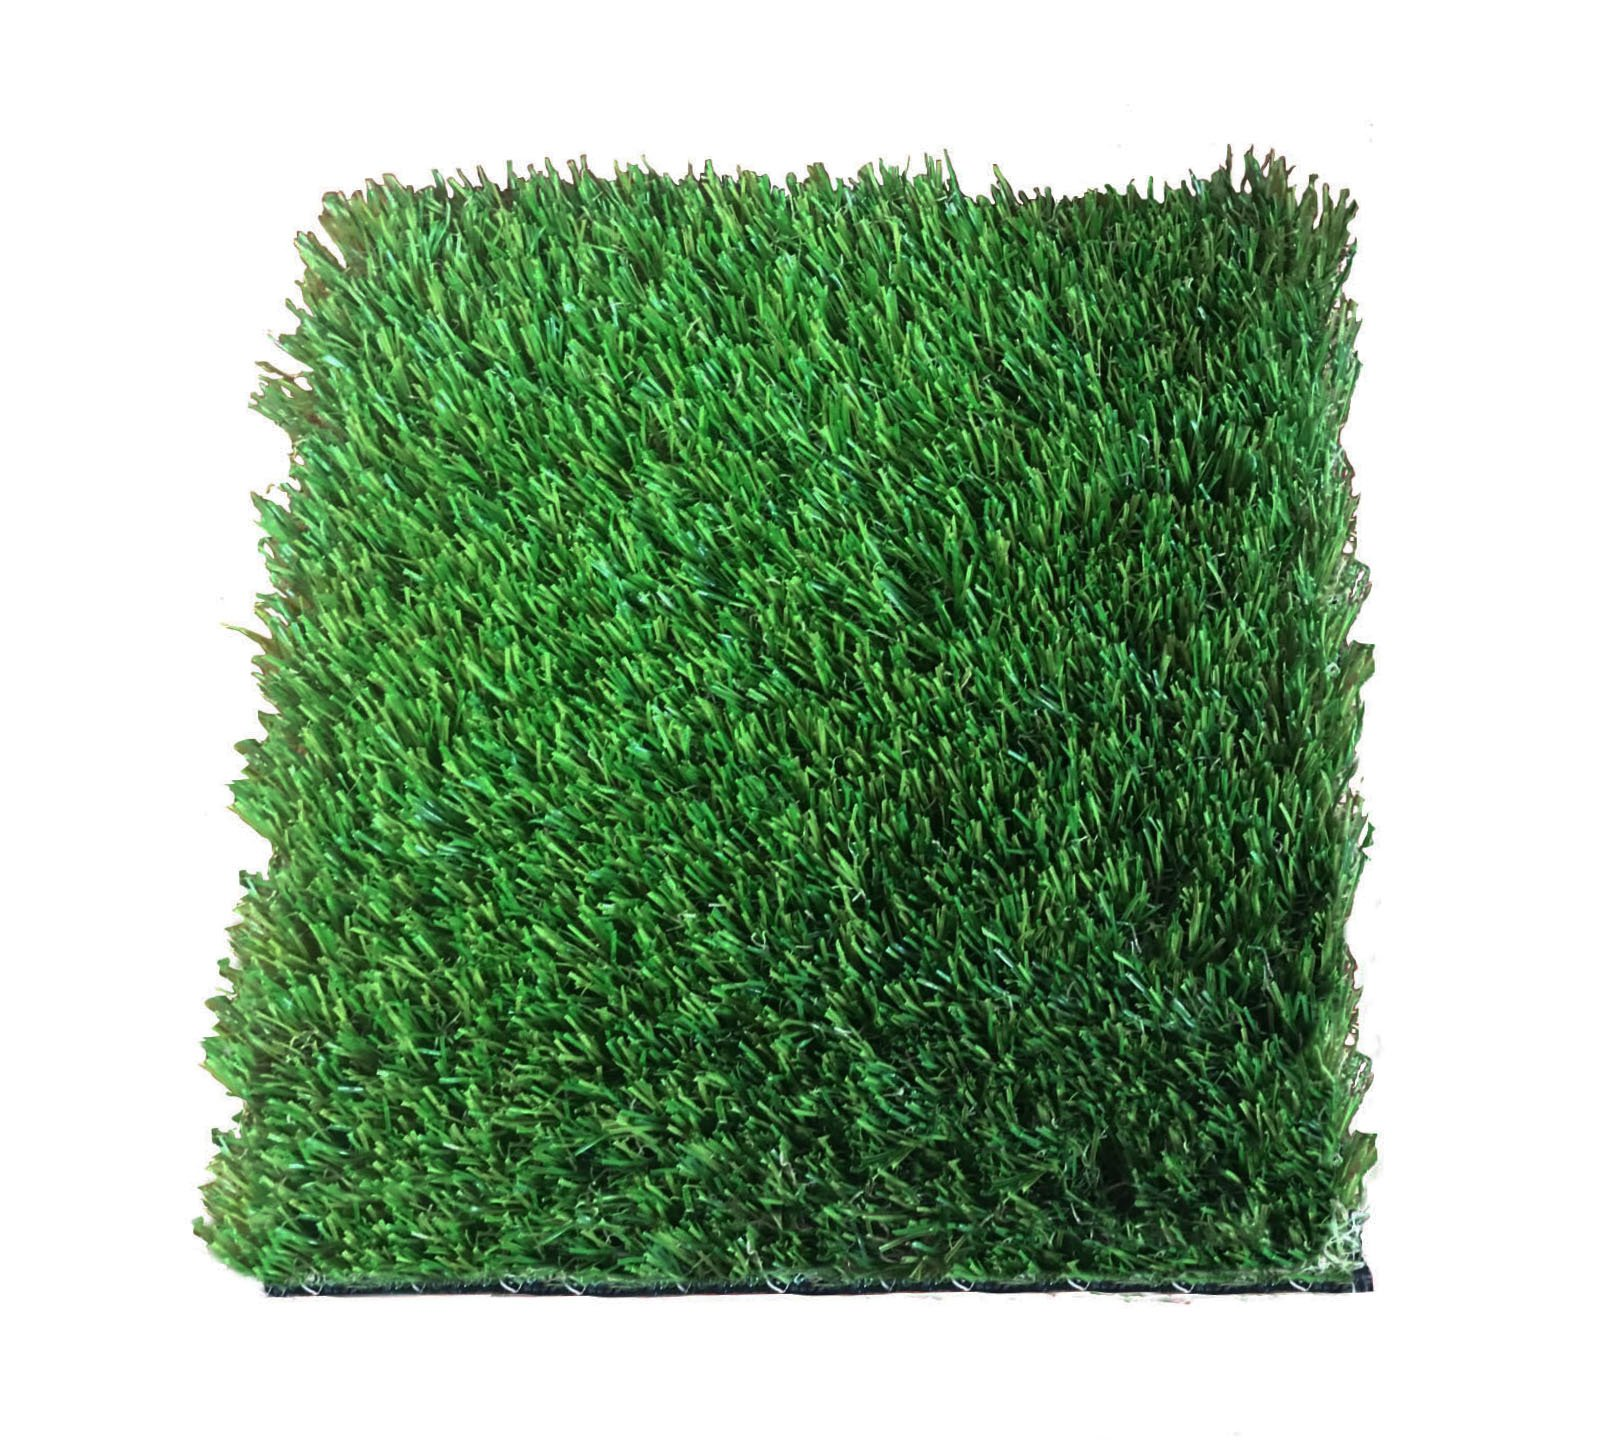 5' x 8' 60oz Artificial Turf Outdoor/Indoor Realistic Looking Grass Rug Pets Area - NEW Imperial Pro by Turf Pros Solution